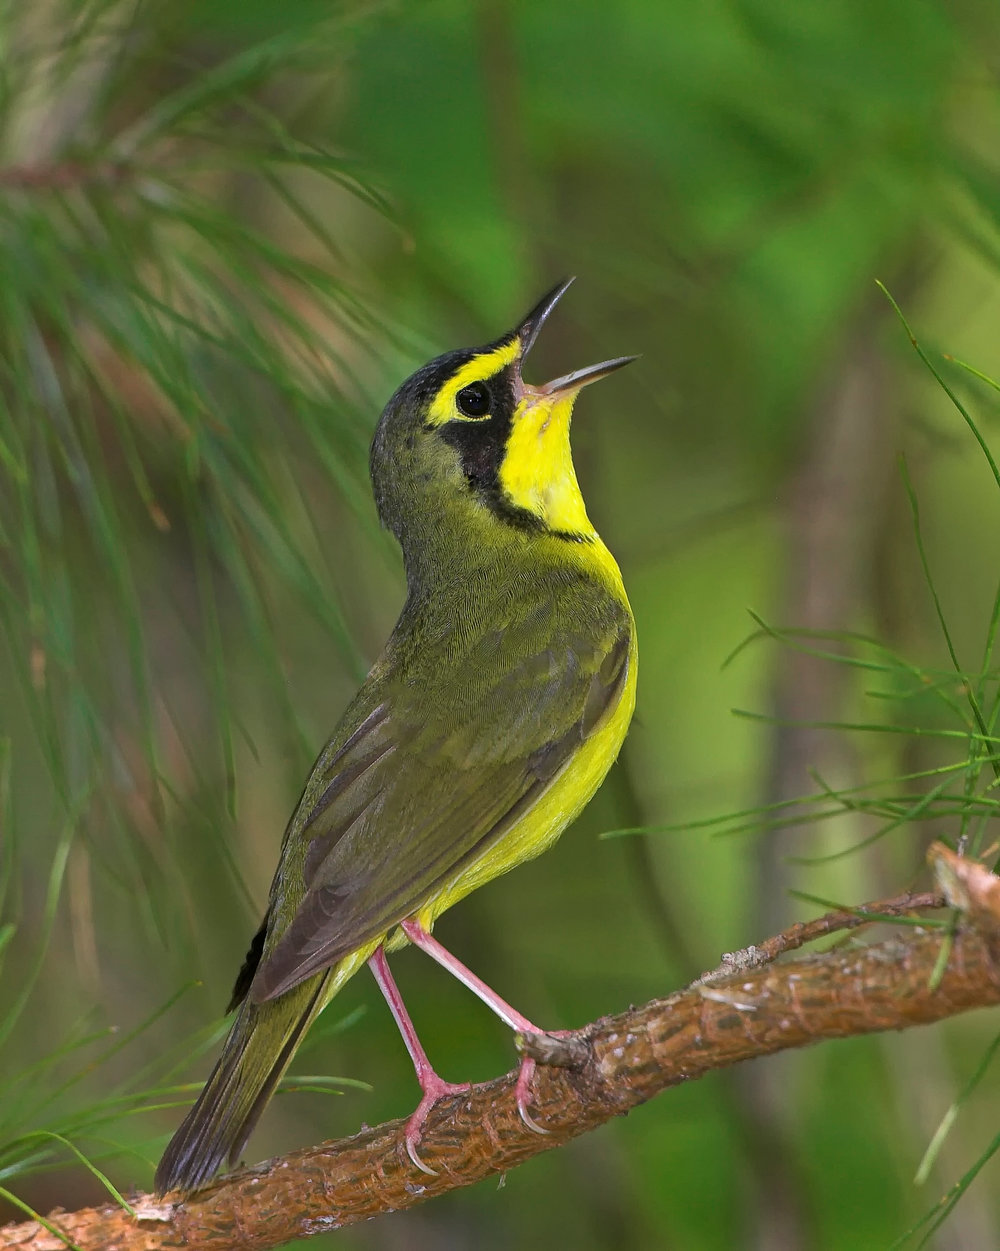 KentuckyWarbler(male)singing_06 (2).jpg